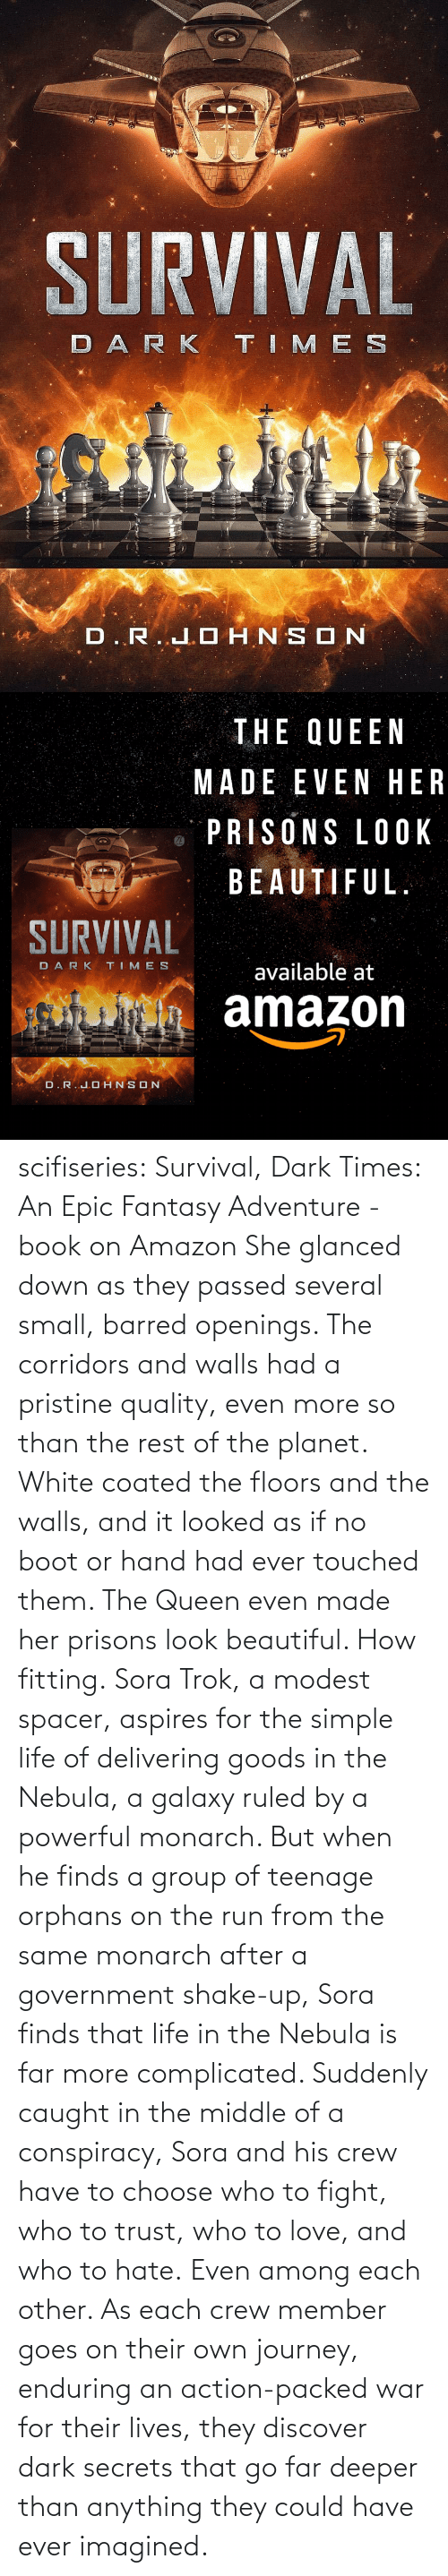 Amazon, Beautiful, and Journey: scifiseries: Survival, Dark Times: An Epic Fantasy Adventure - book on Amazon  She glanced down as they  passed several small, barred openings. The corridors and walls had a  pristine quality, even more so than the rest of the planet. White coated  the floors and the walls, and it looked as if no boot or hand had ever  touched them.  The Queen even made her prisons look beautiful.  How fitting. Sora  Trok, a modest spacer, aspires for the simple life of delivering goods  in the Nebula, a galaxy ruled by a powerful monarch. But when he finds a  group of teenage orphans on the run from the same monarch after a  government shake-up, Sora finds that life in the Nebula is far more complicated.  Suddenly  caught in the middle of a conspiracy, Sora and his crew have to choose  who to fight, who to trust, who to love, and who to hate. Even among each other.  As  each crew member goes on their own journey, enduring an action-packed  war for their lives, they discover dark secrets that go far deeper than  anything they could have ever imagined.